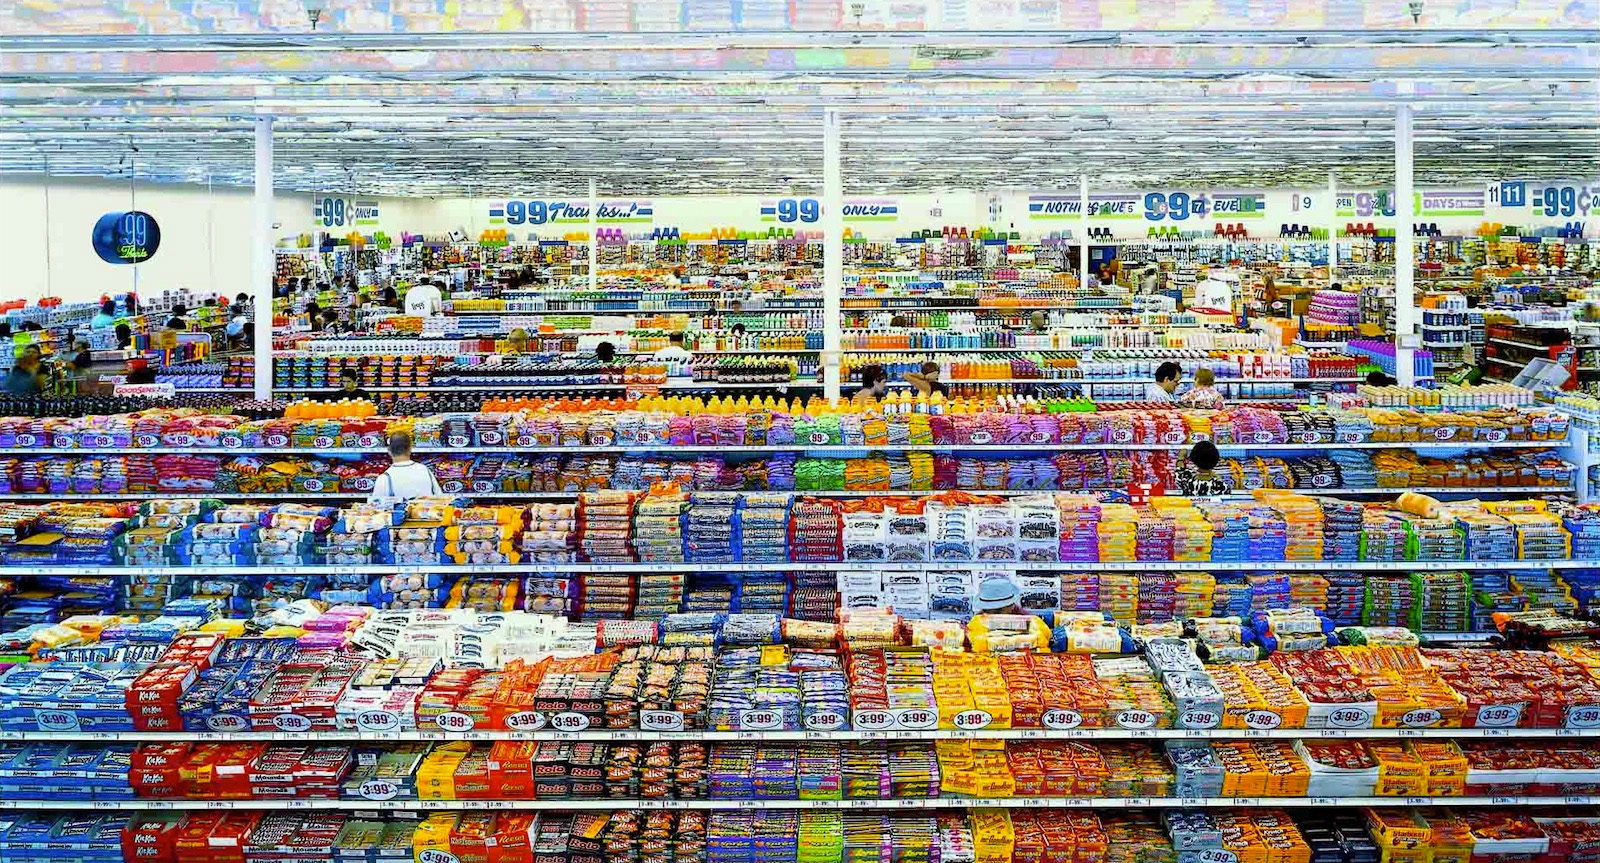 most-expensive-photograph-99-cent-II-diptychon-andreas-gursky-4